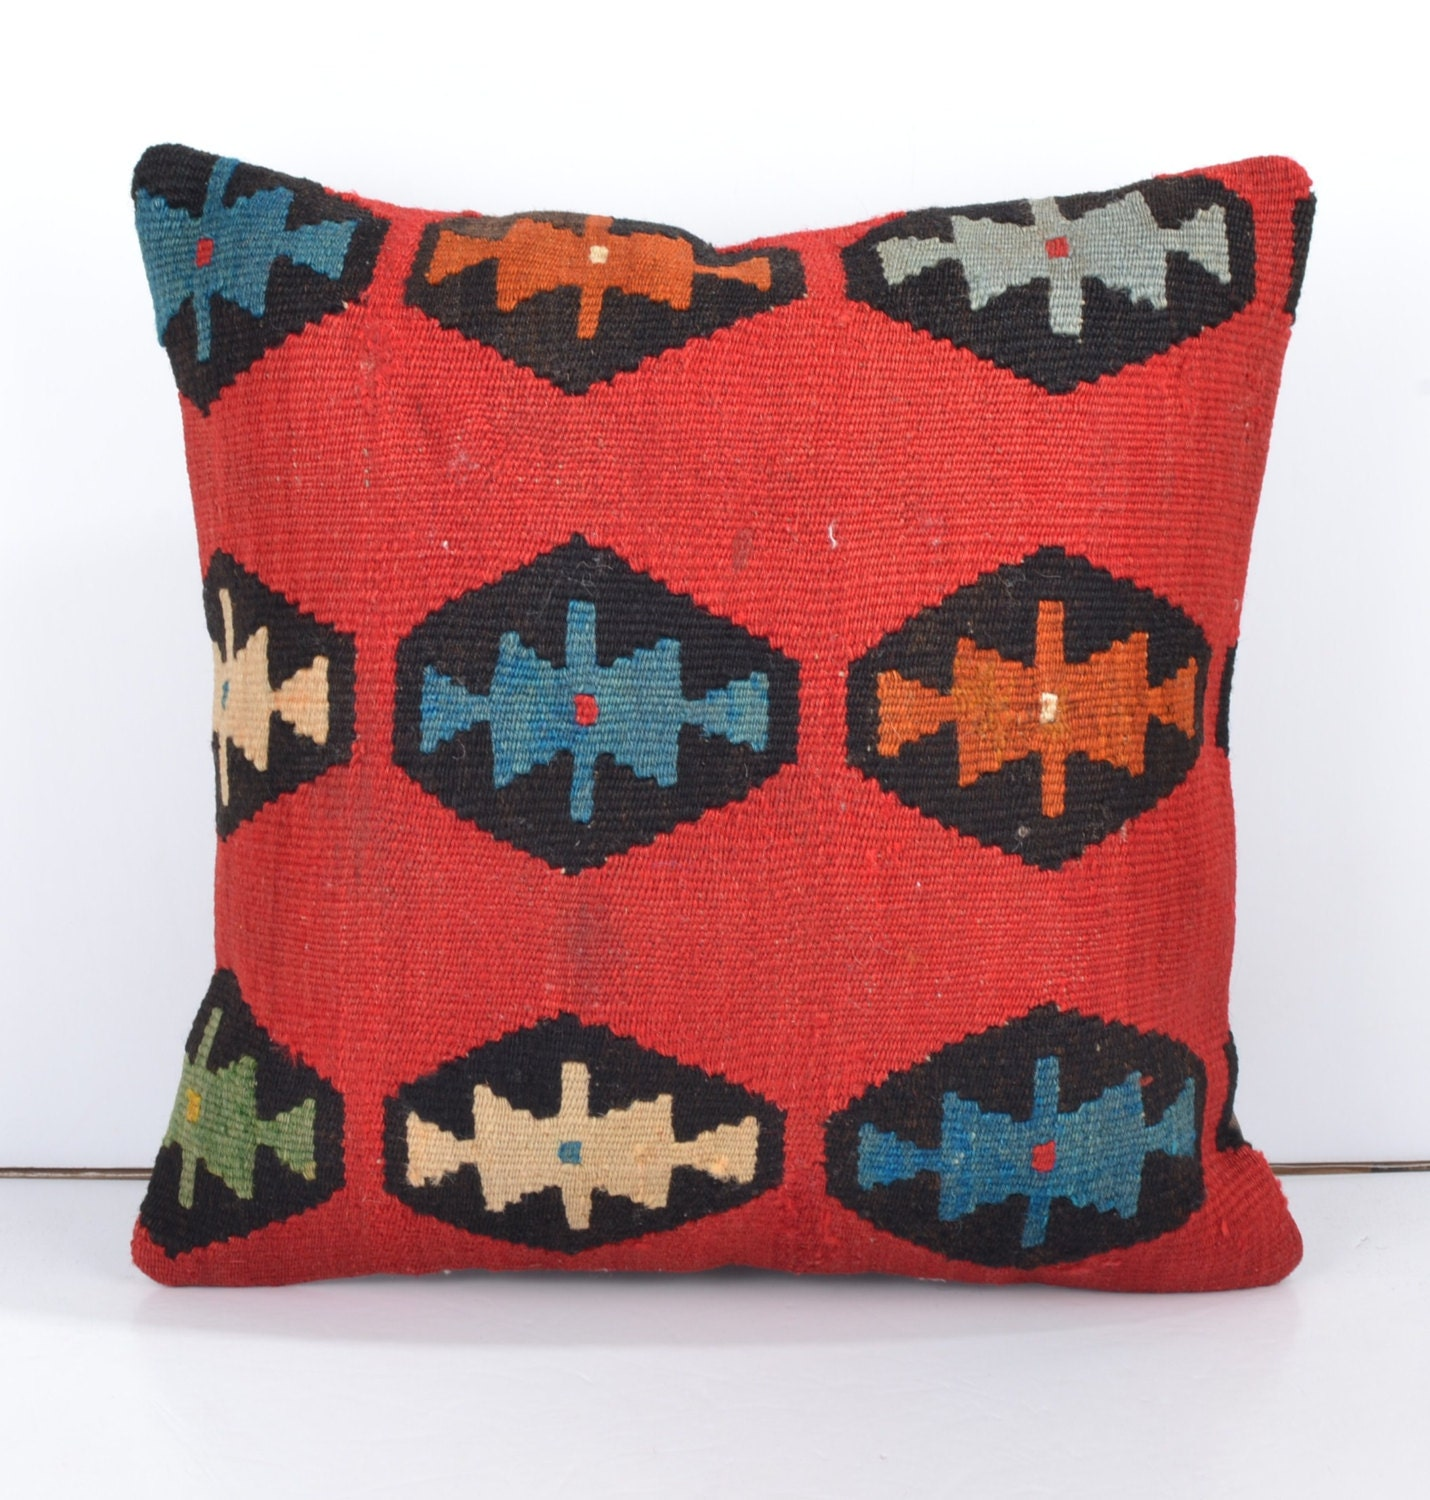 Southwestern Pillows And Throws : southwestern pillow decorative throw pillow cotton by arastabazaar